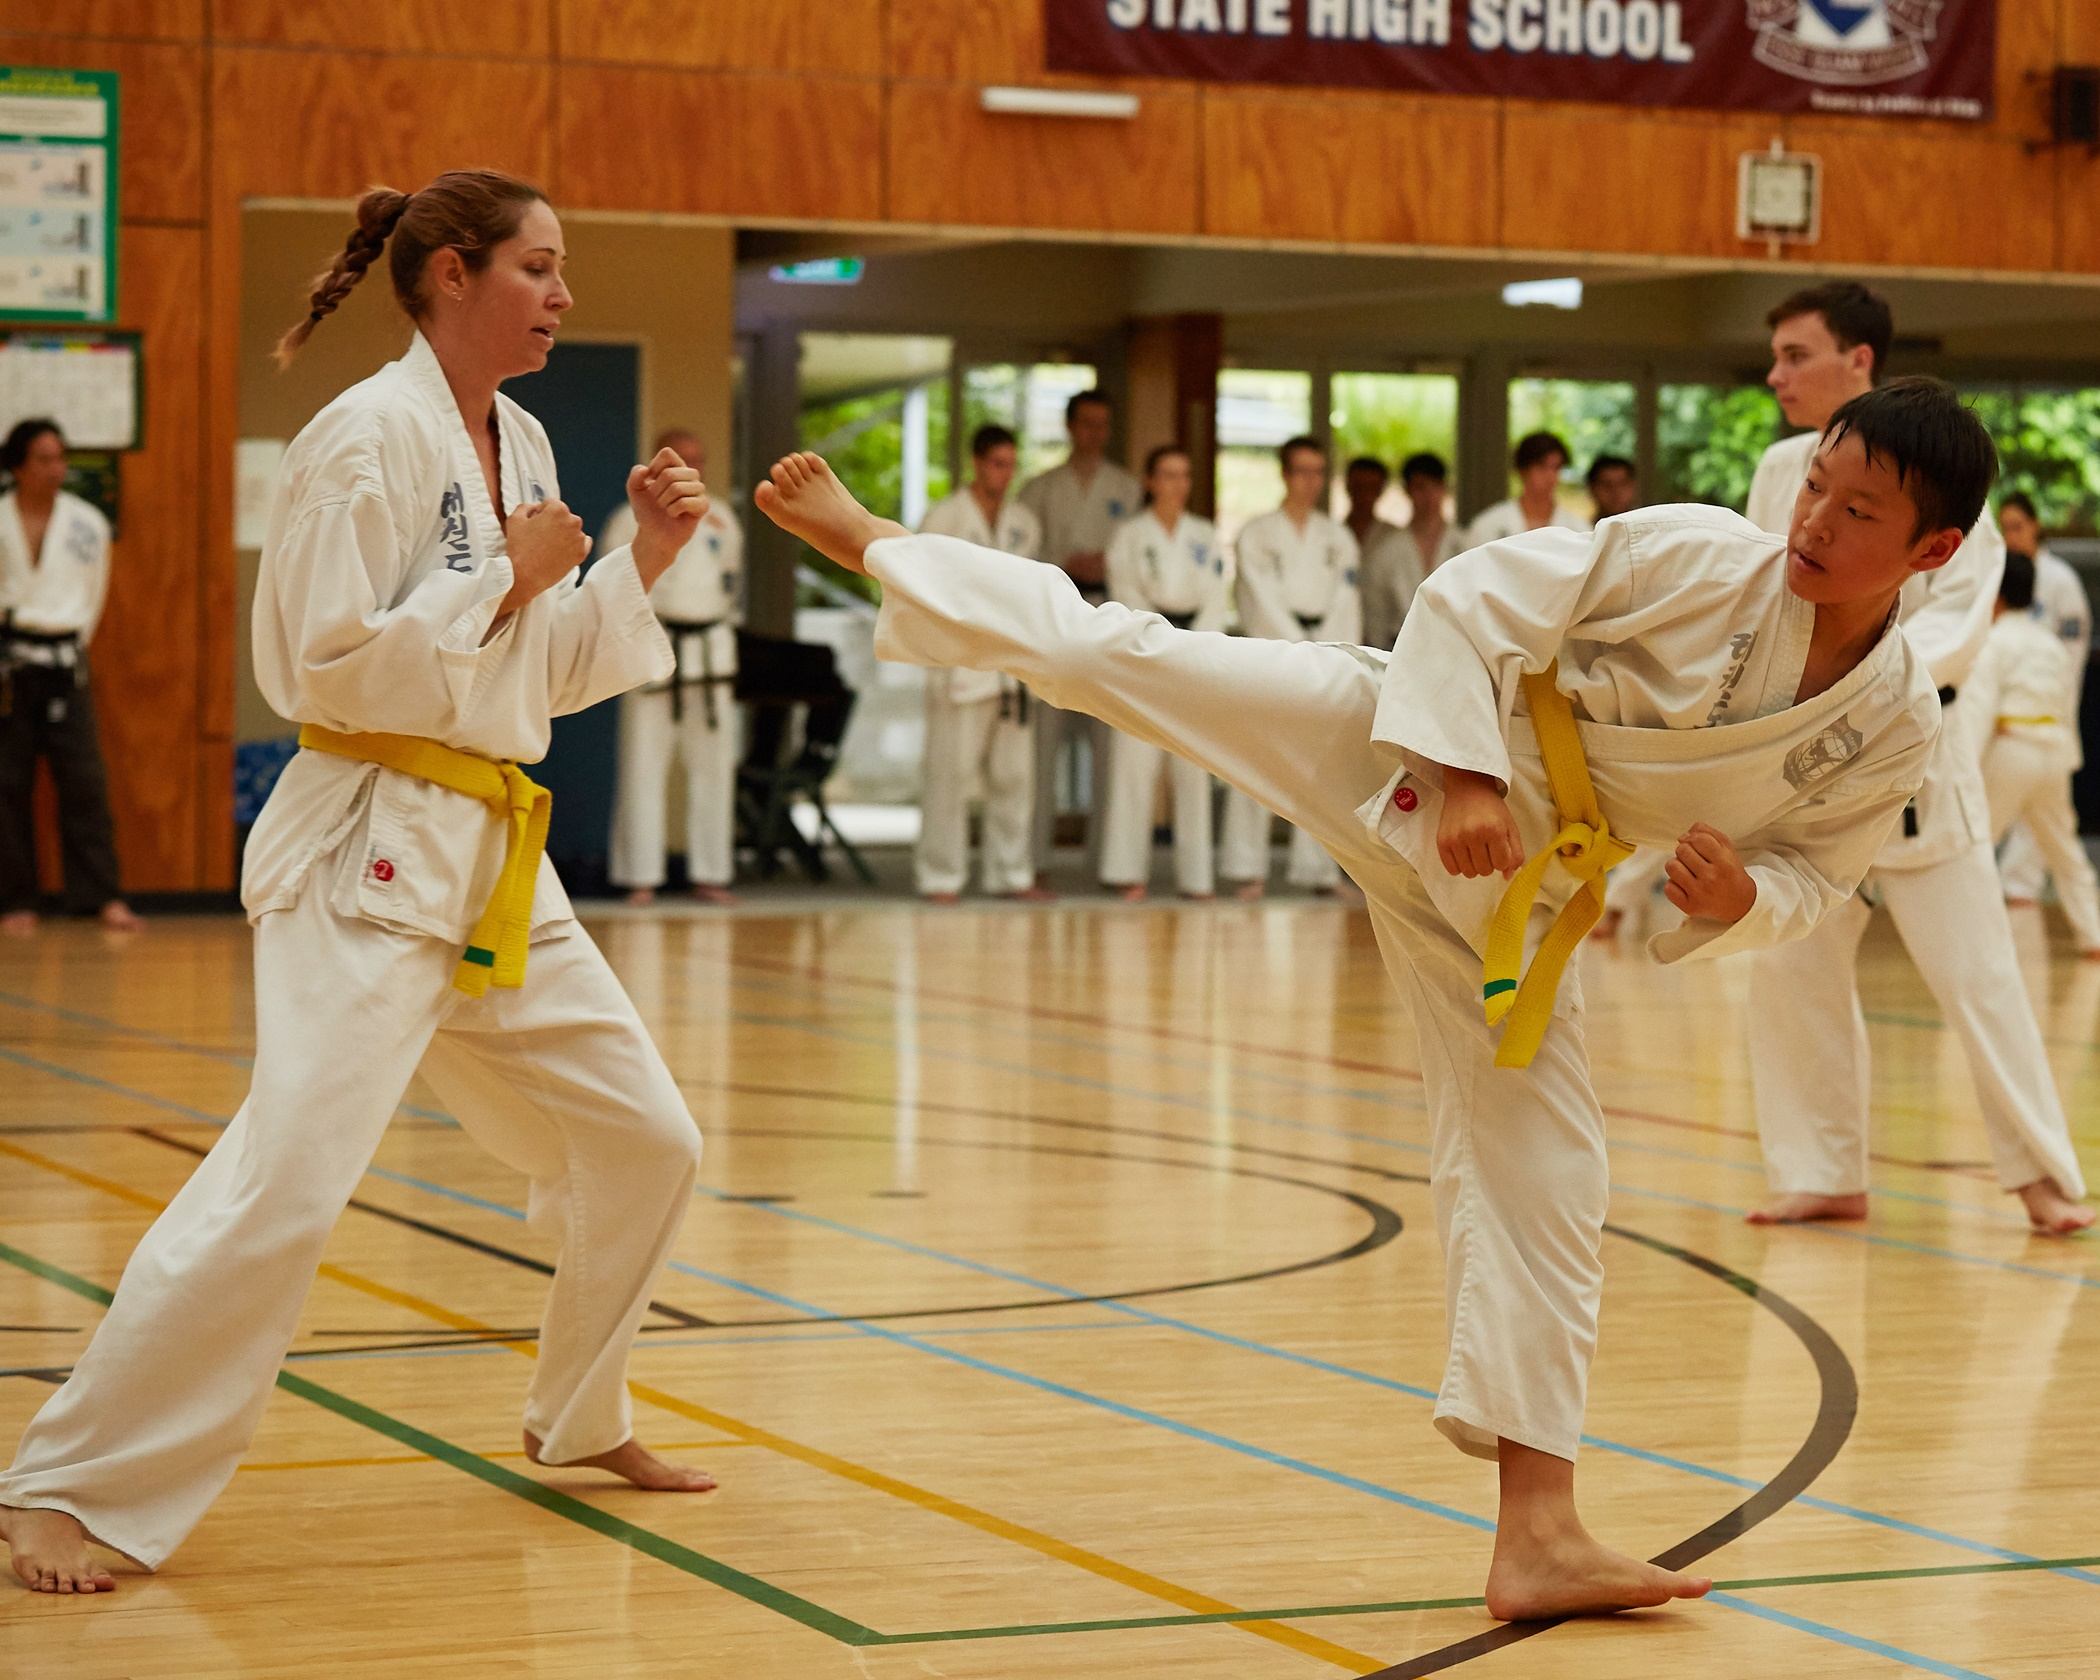 Latest News - image sparring on https://www.pacificinternationaltaekwondo.com.au